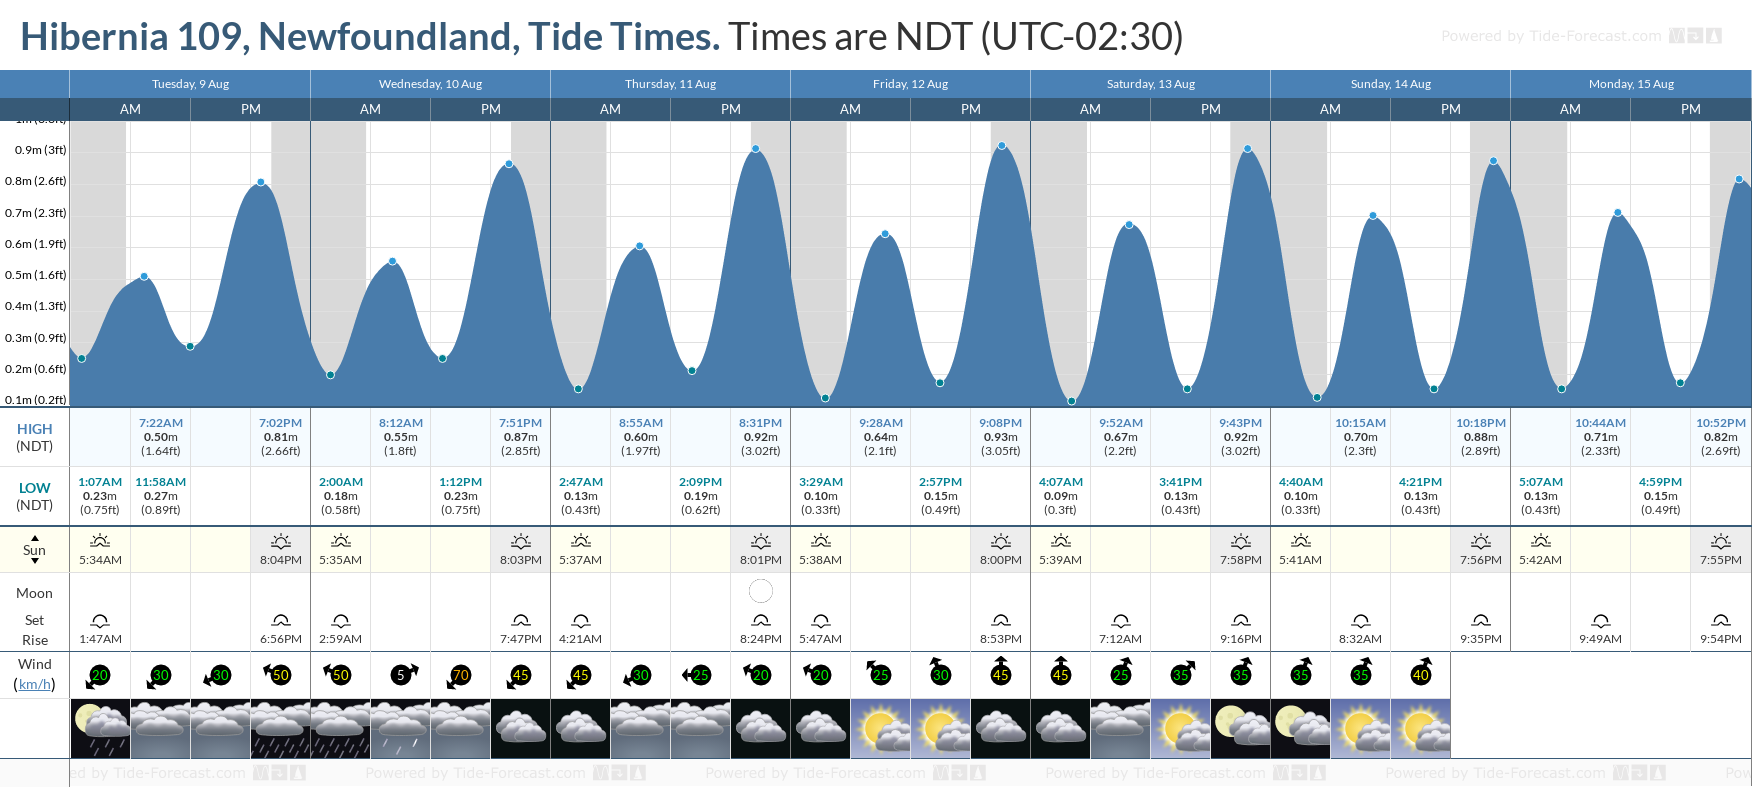 Hibernia 109, Newfoundland Tide Chart including high and low tide tide times for the next 7 days